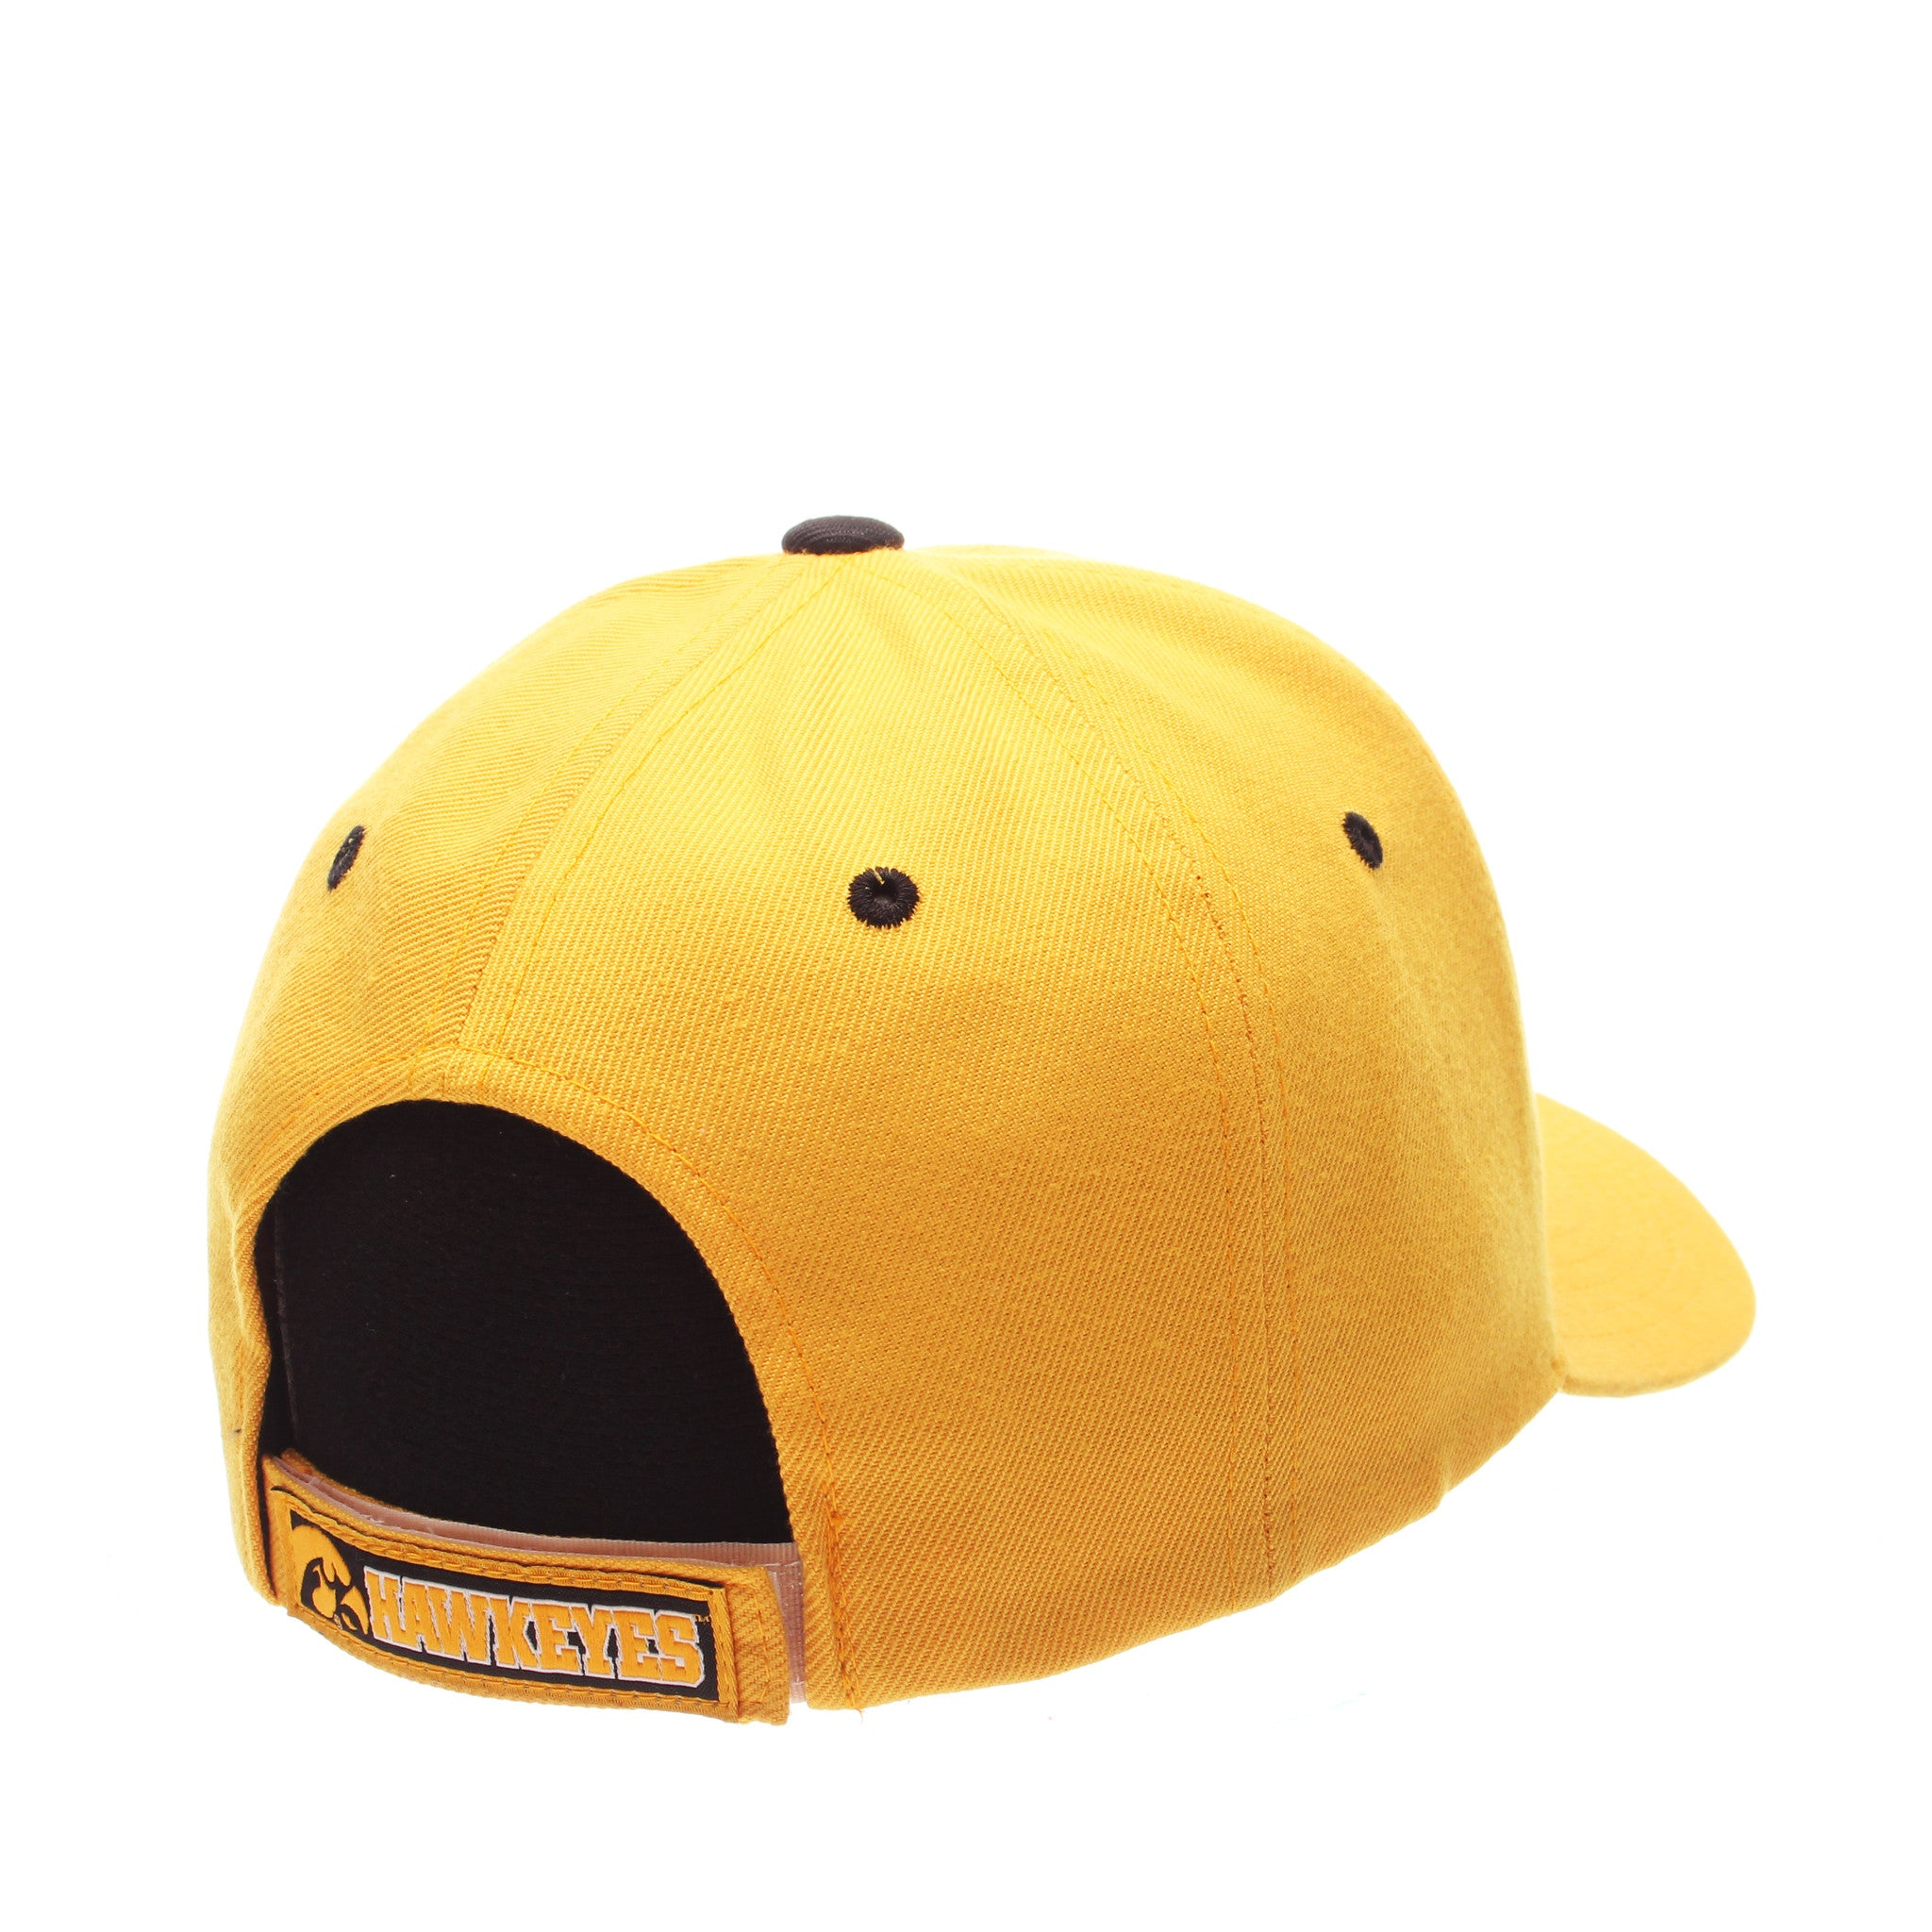 Iowa Competitor Standard (Low) (HAWKEYE) Gold Zwool Adjustable hats by Zephyr